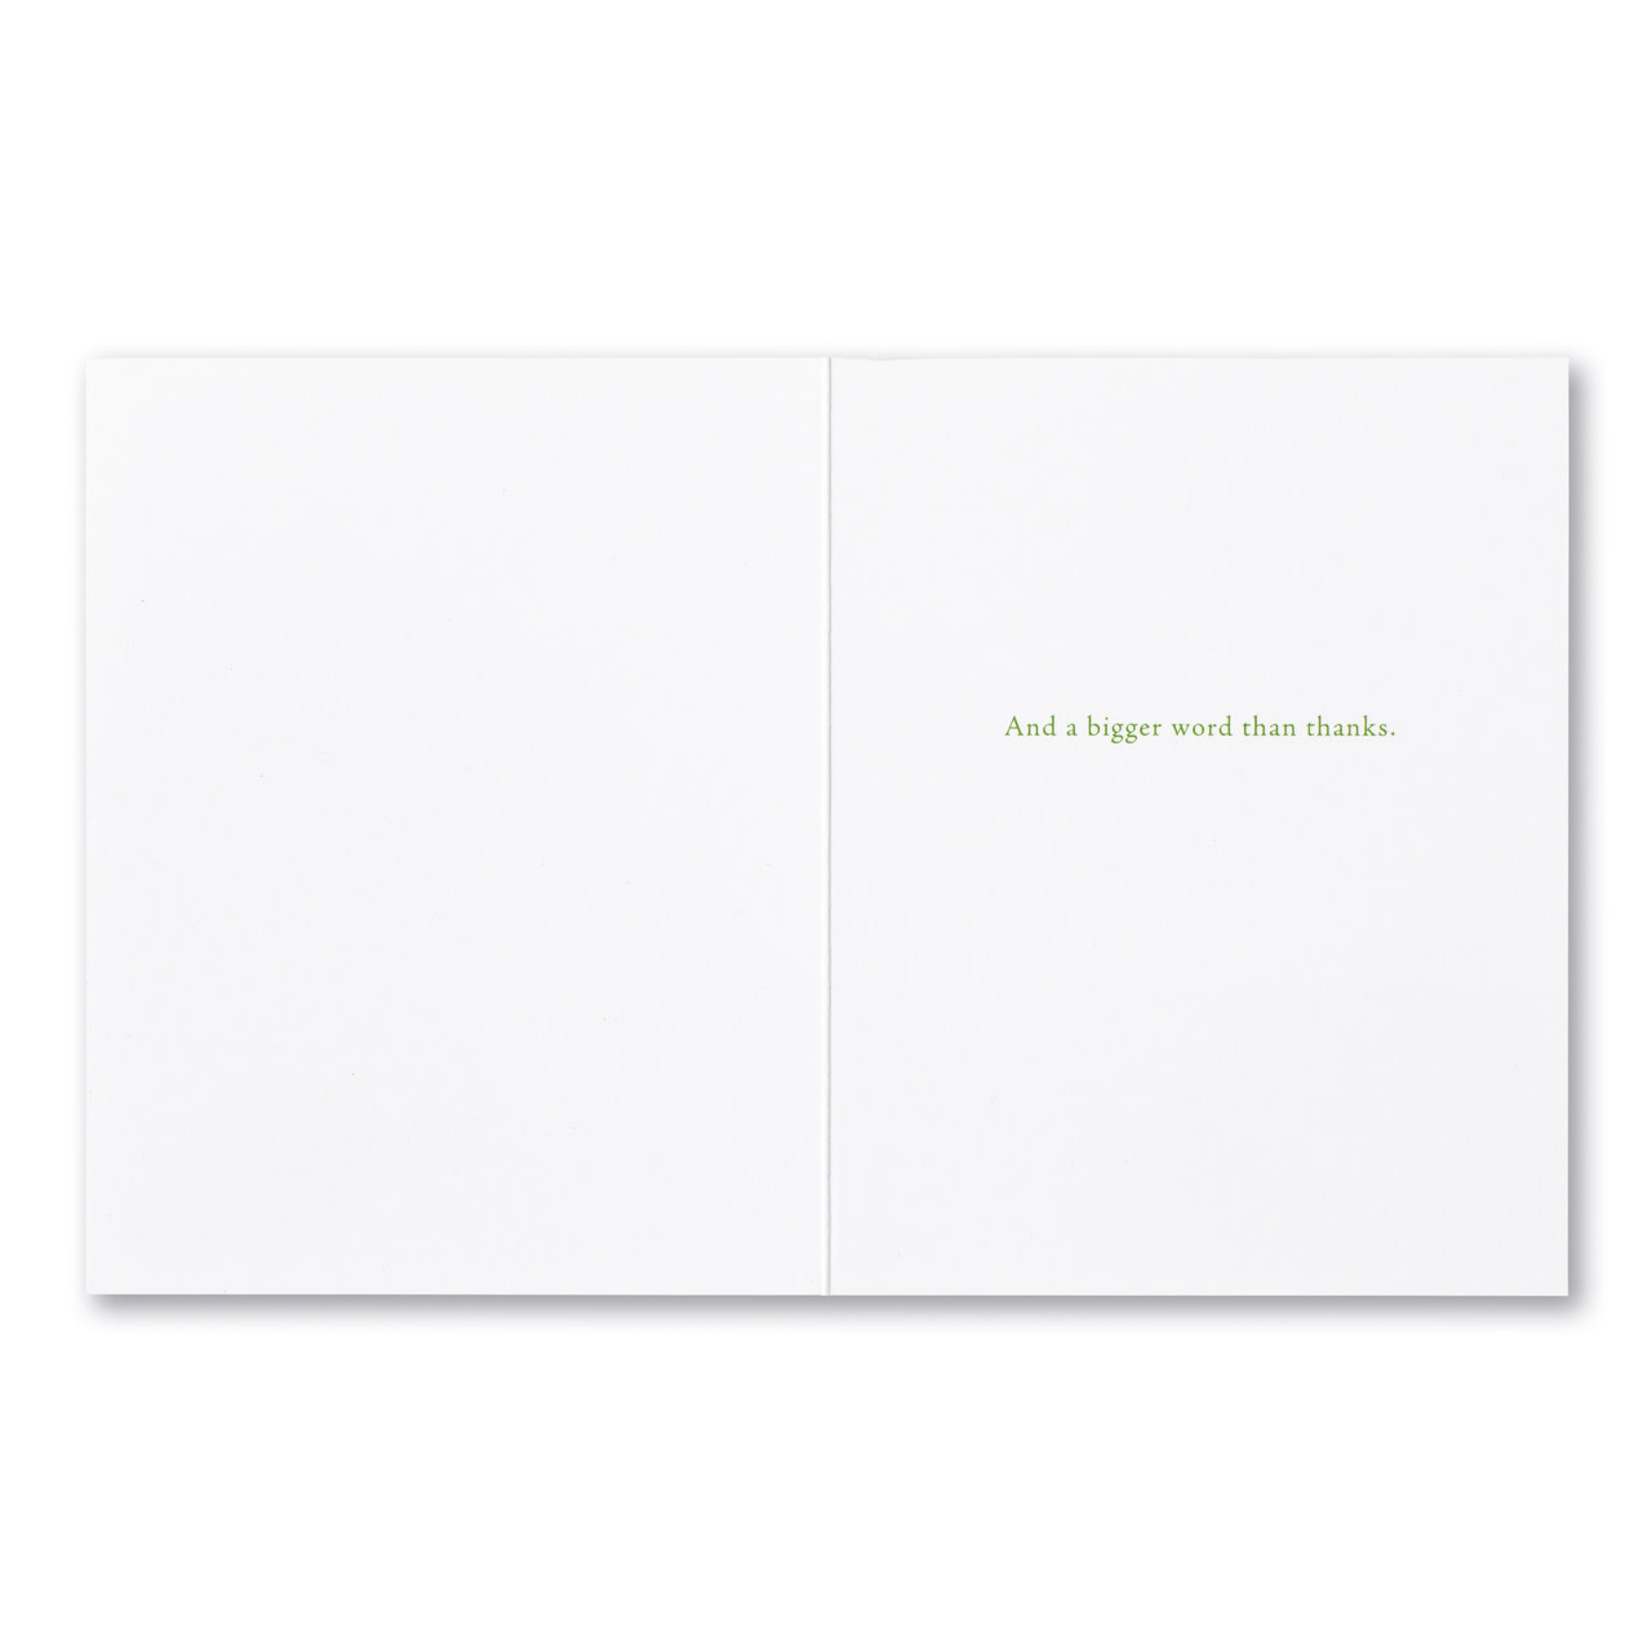 I WANT A BRIGHTER WORD CARD